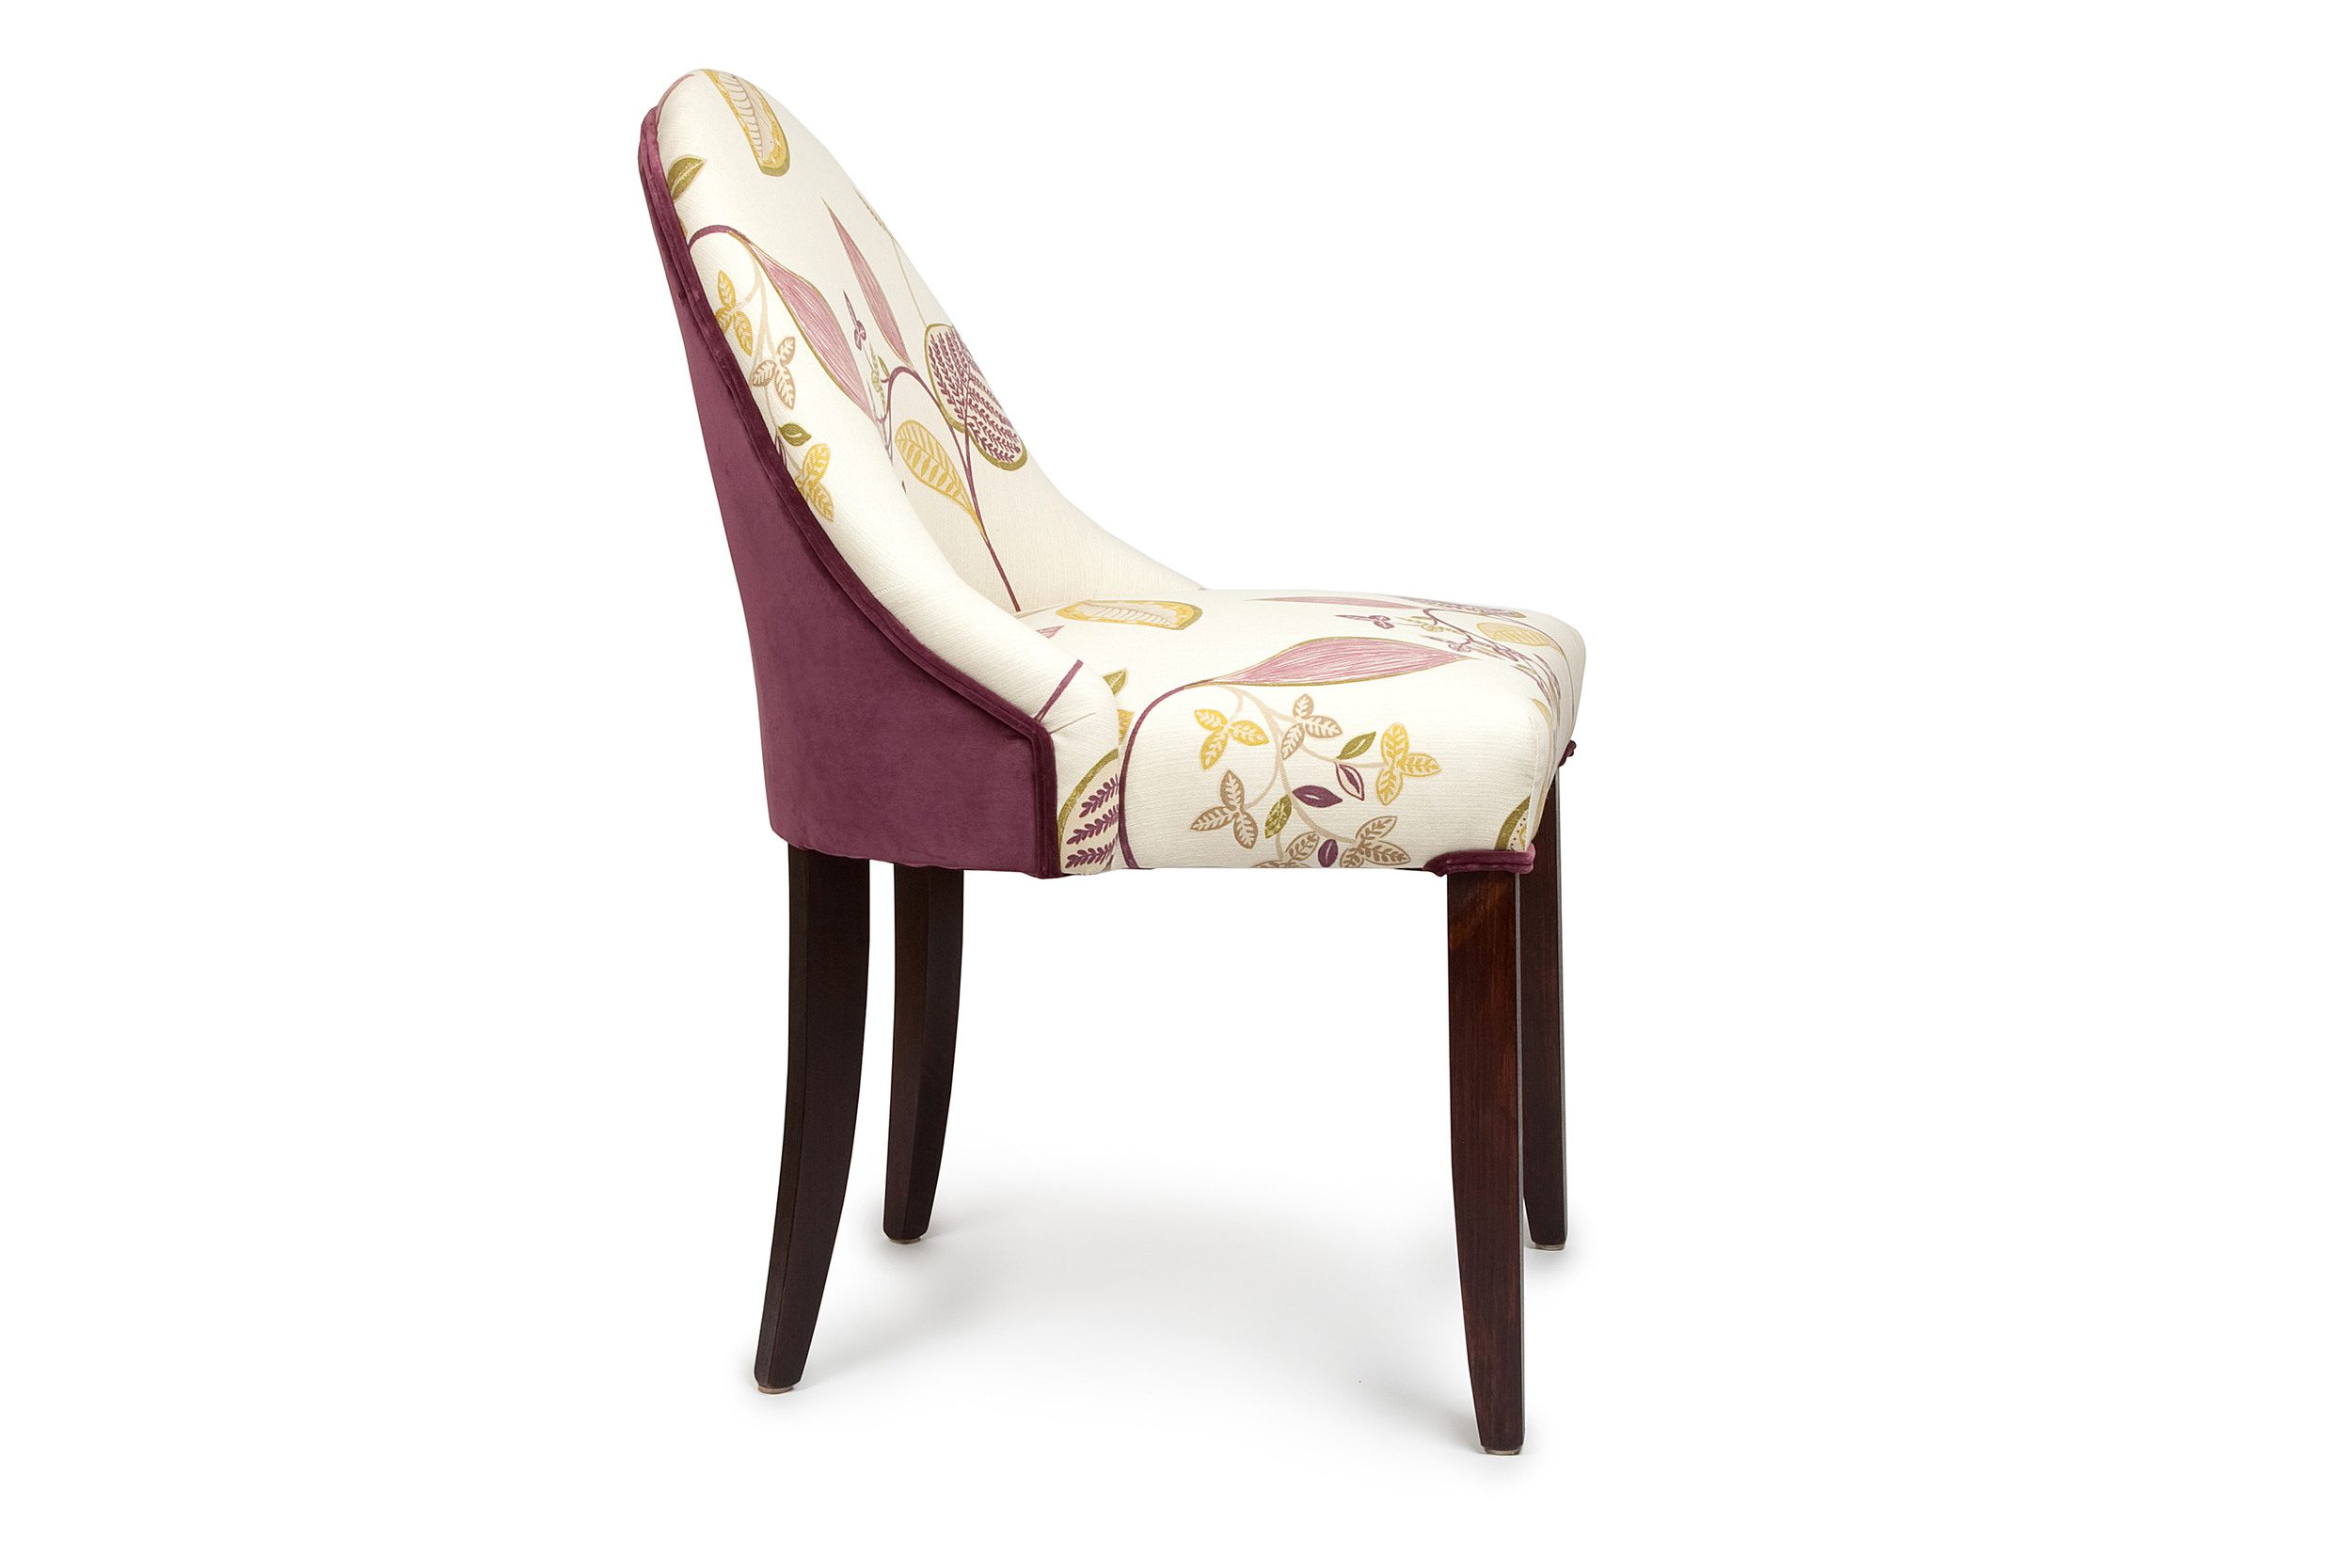 Dining Chairs - Click for more designs